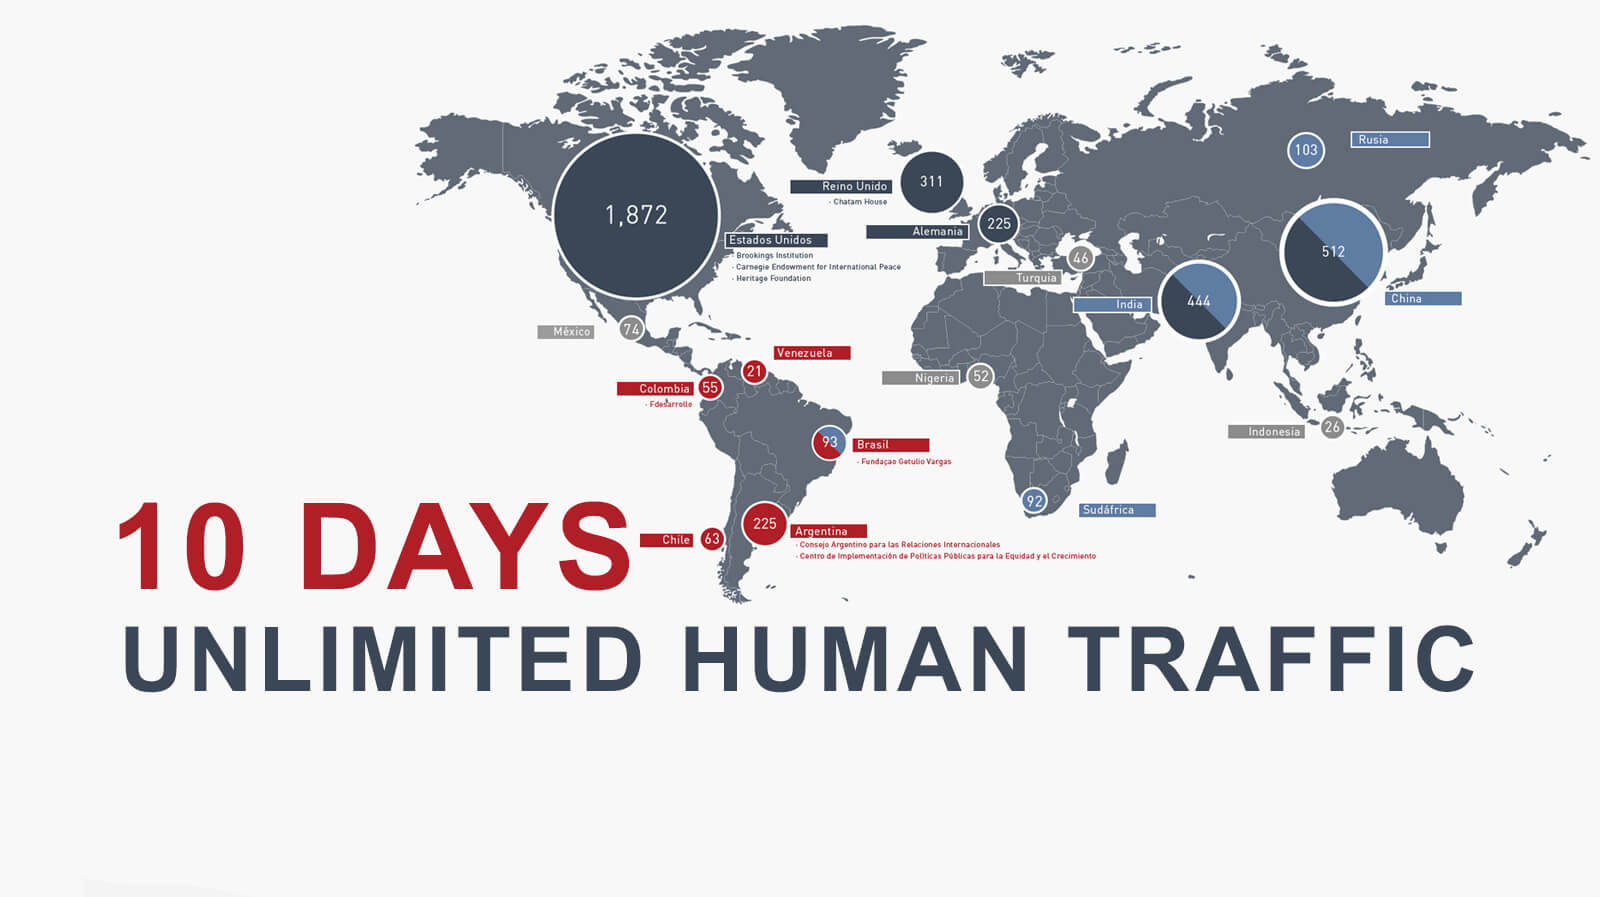 UNLIMITED HUMAN TRAFFIC FOR 10 DAYS